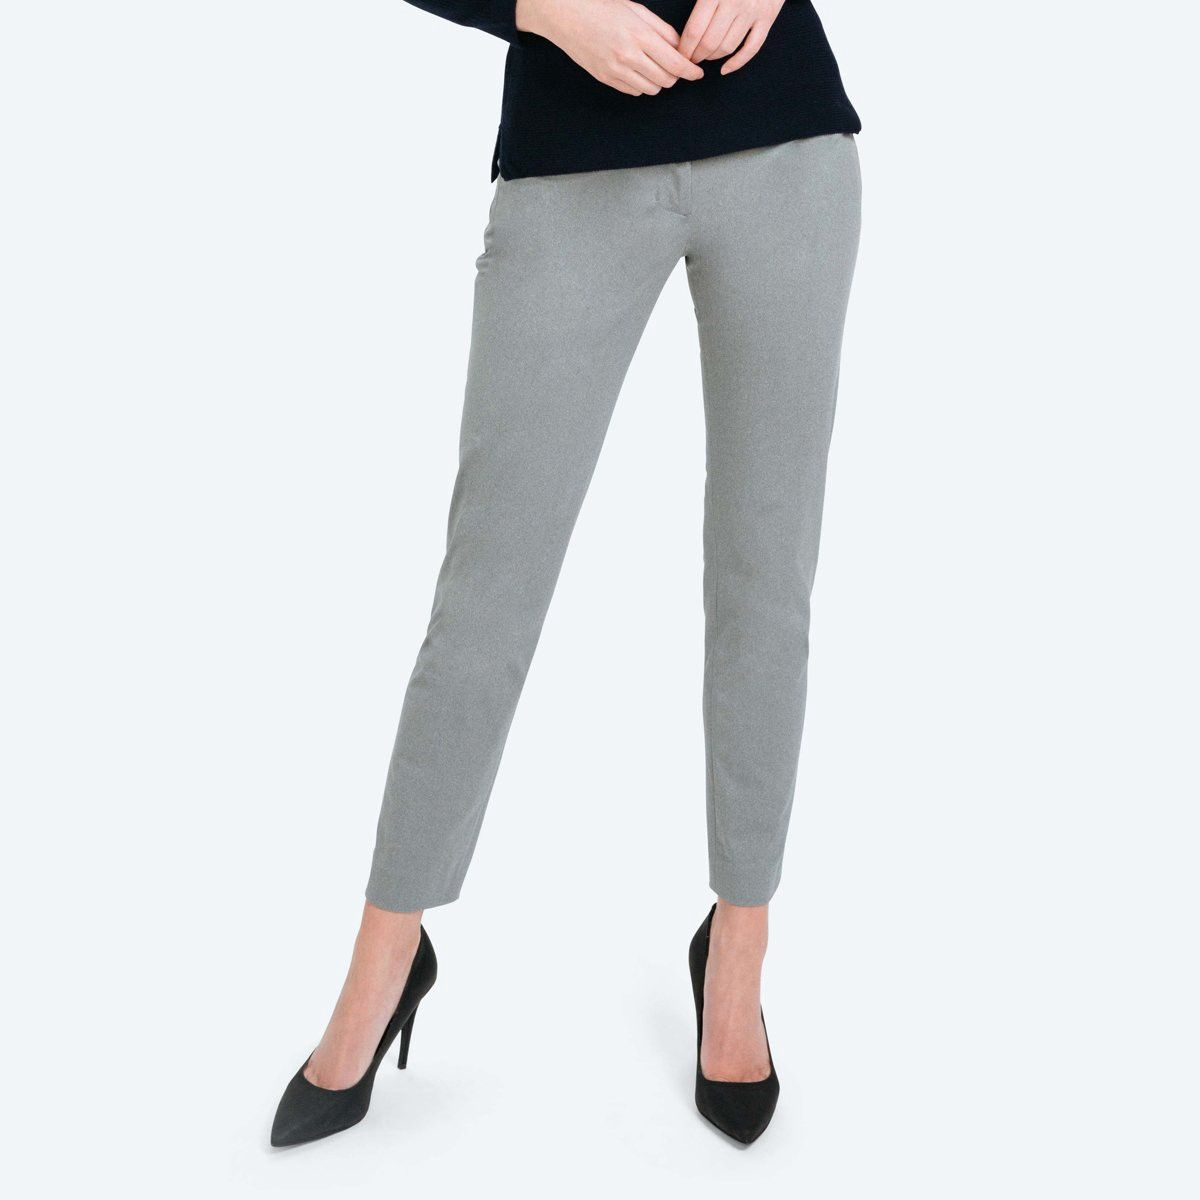 96f1a6136b9 Ministry Of Supply Women's Slim Kinetic Pants - Grey Heather 00 Gray ...